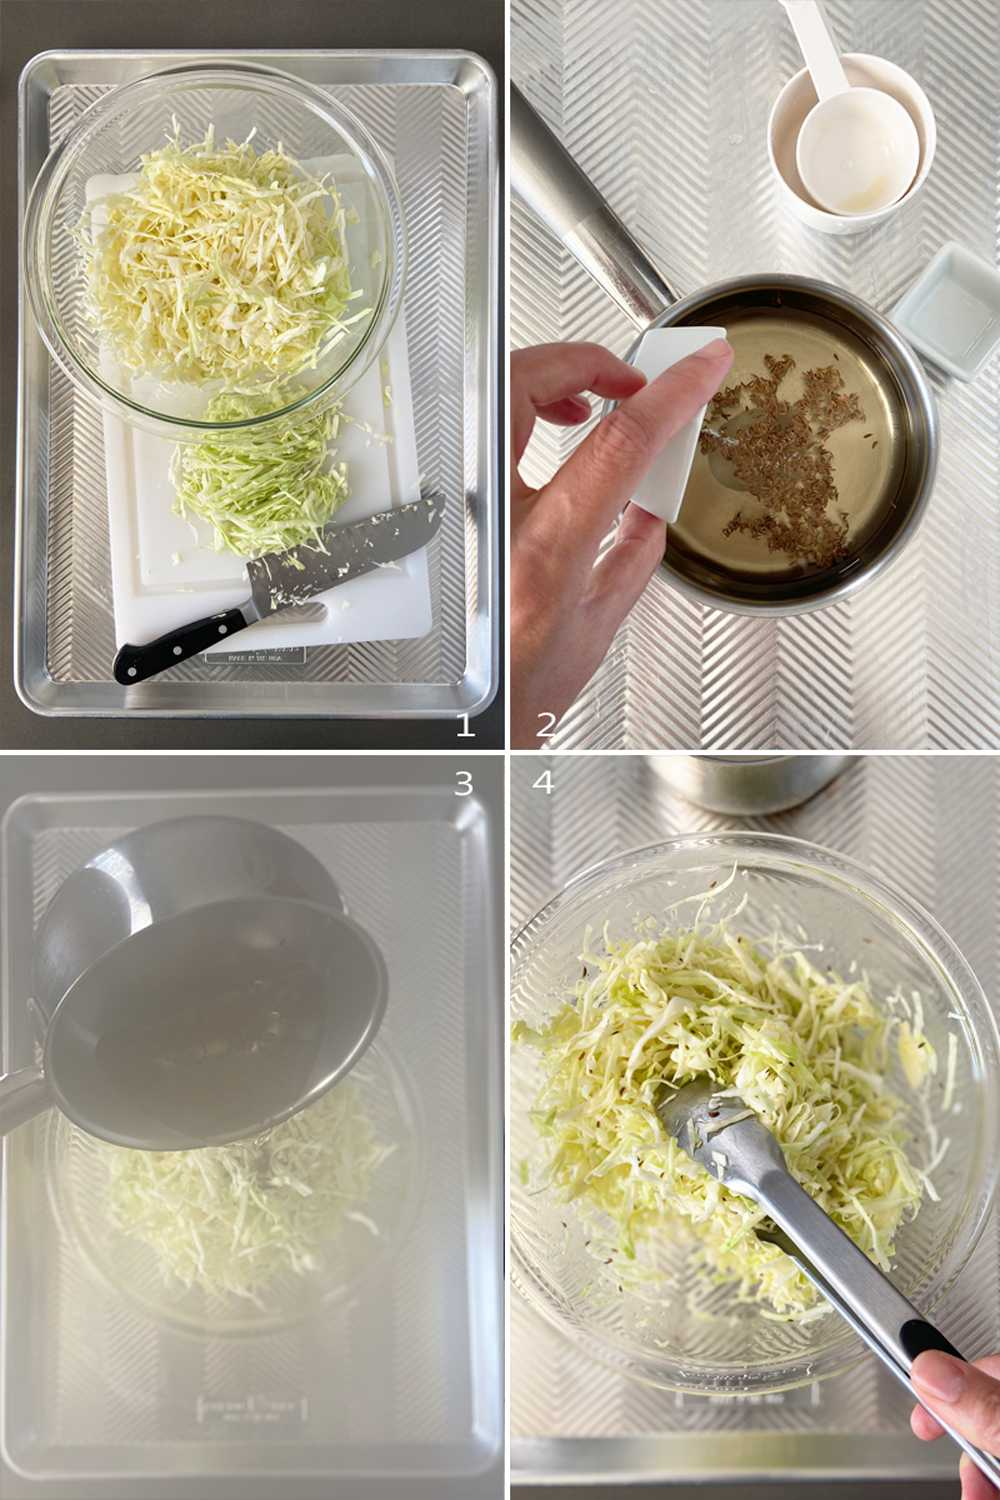 How to make German coleslaw (part 1)